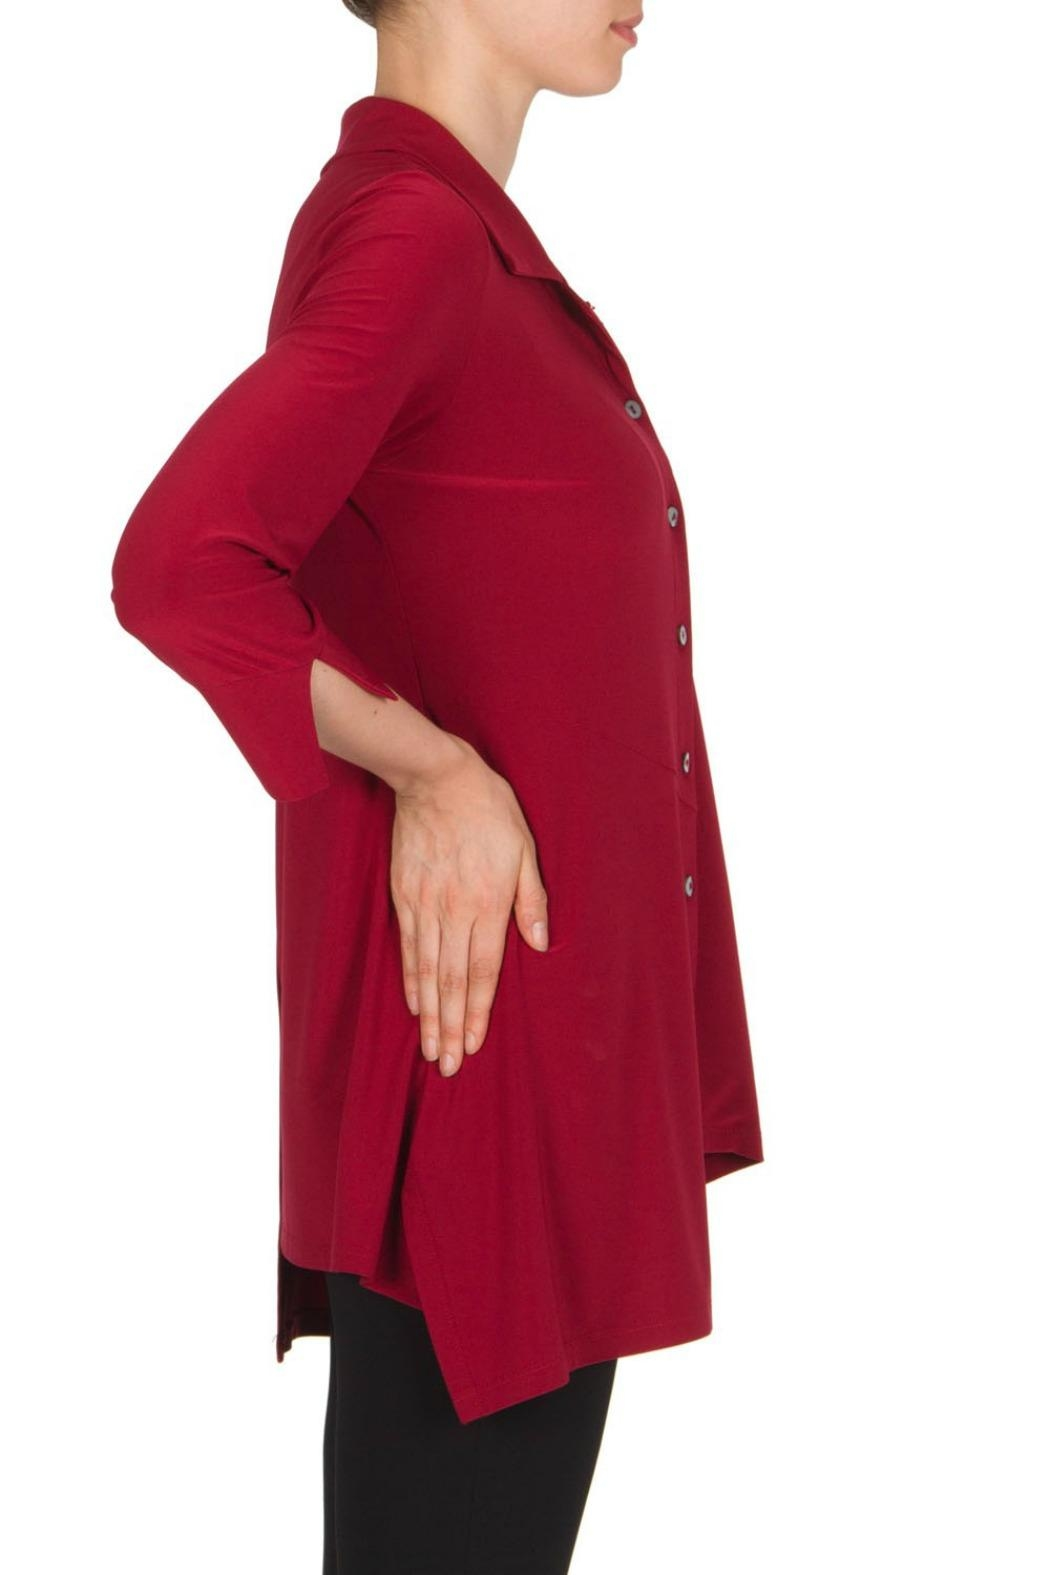 Joseph Ribkoff Tunic Claire Red Top - Front Full Image